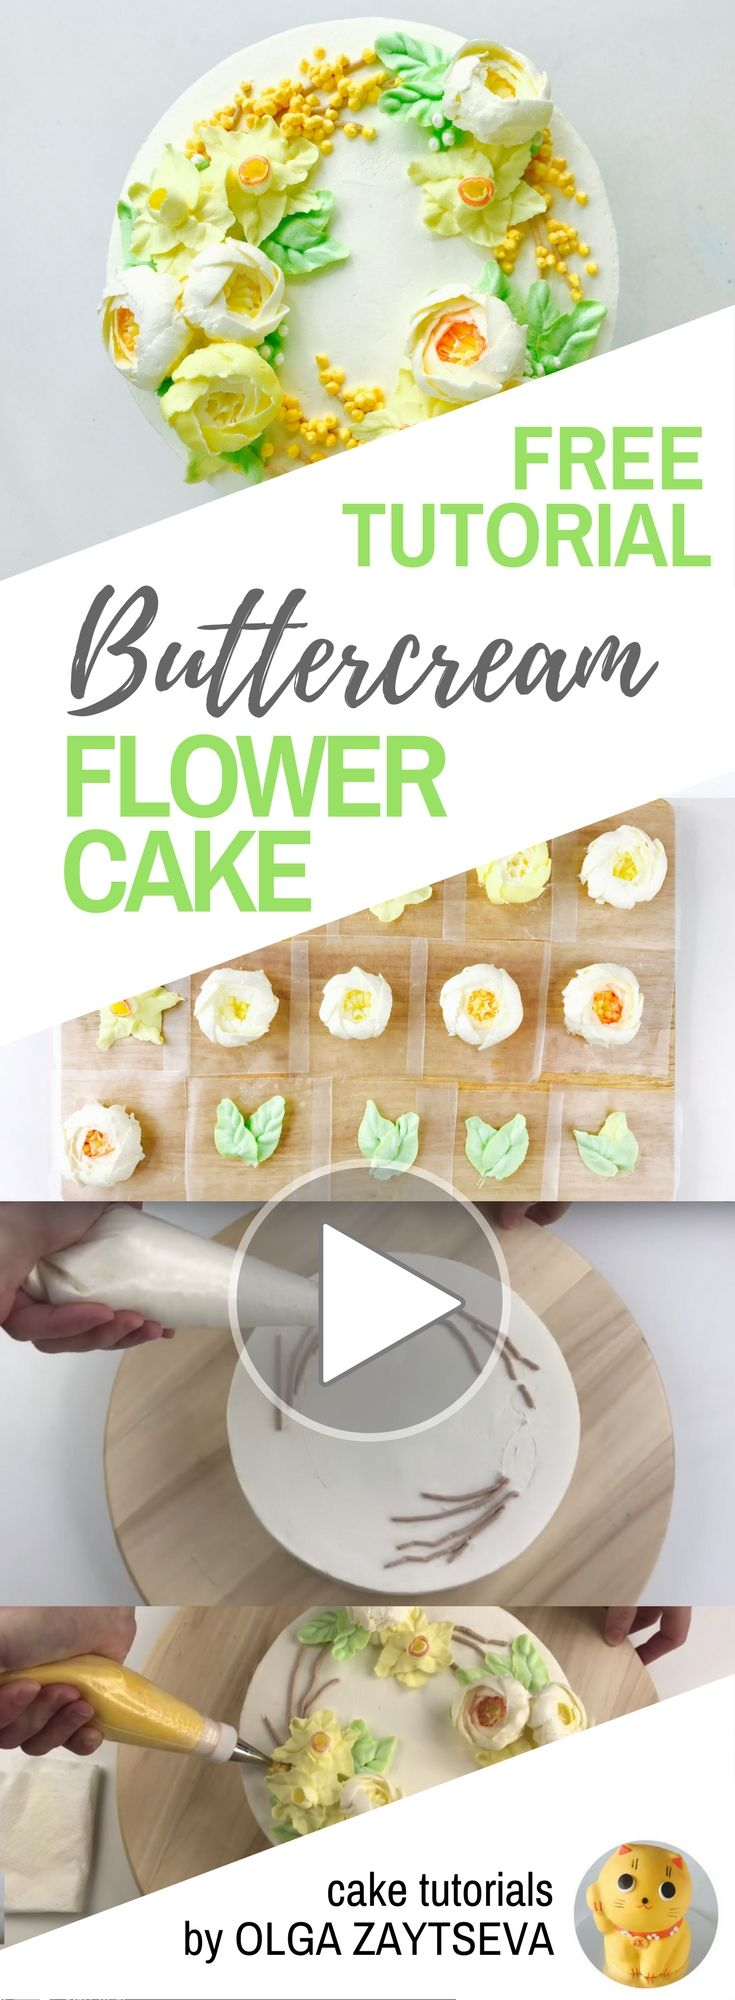 HOT CAKE TRENDS How to make Daffodils and roses Buttercream flower cake - Cake decorating tutorial by Olga Zaytseva. Learn how to pipe Daffodils and Roses and create Spring inspired buttercream flower wreath cake.